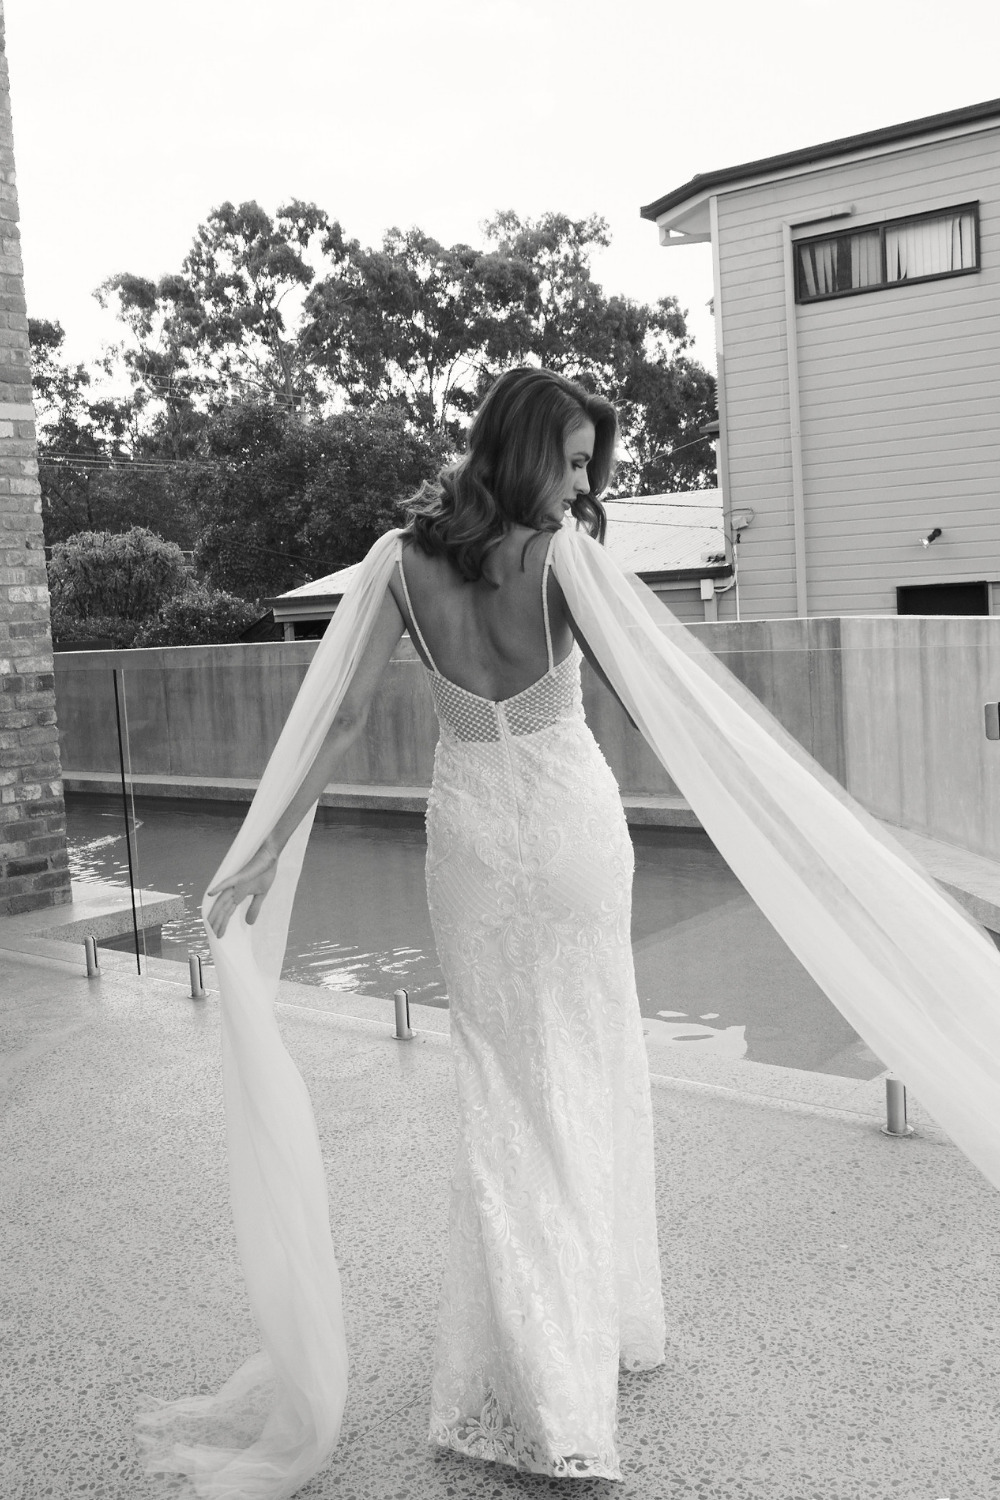 Detachable tulle angel wings - in action